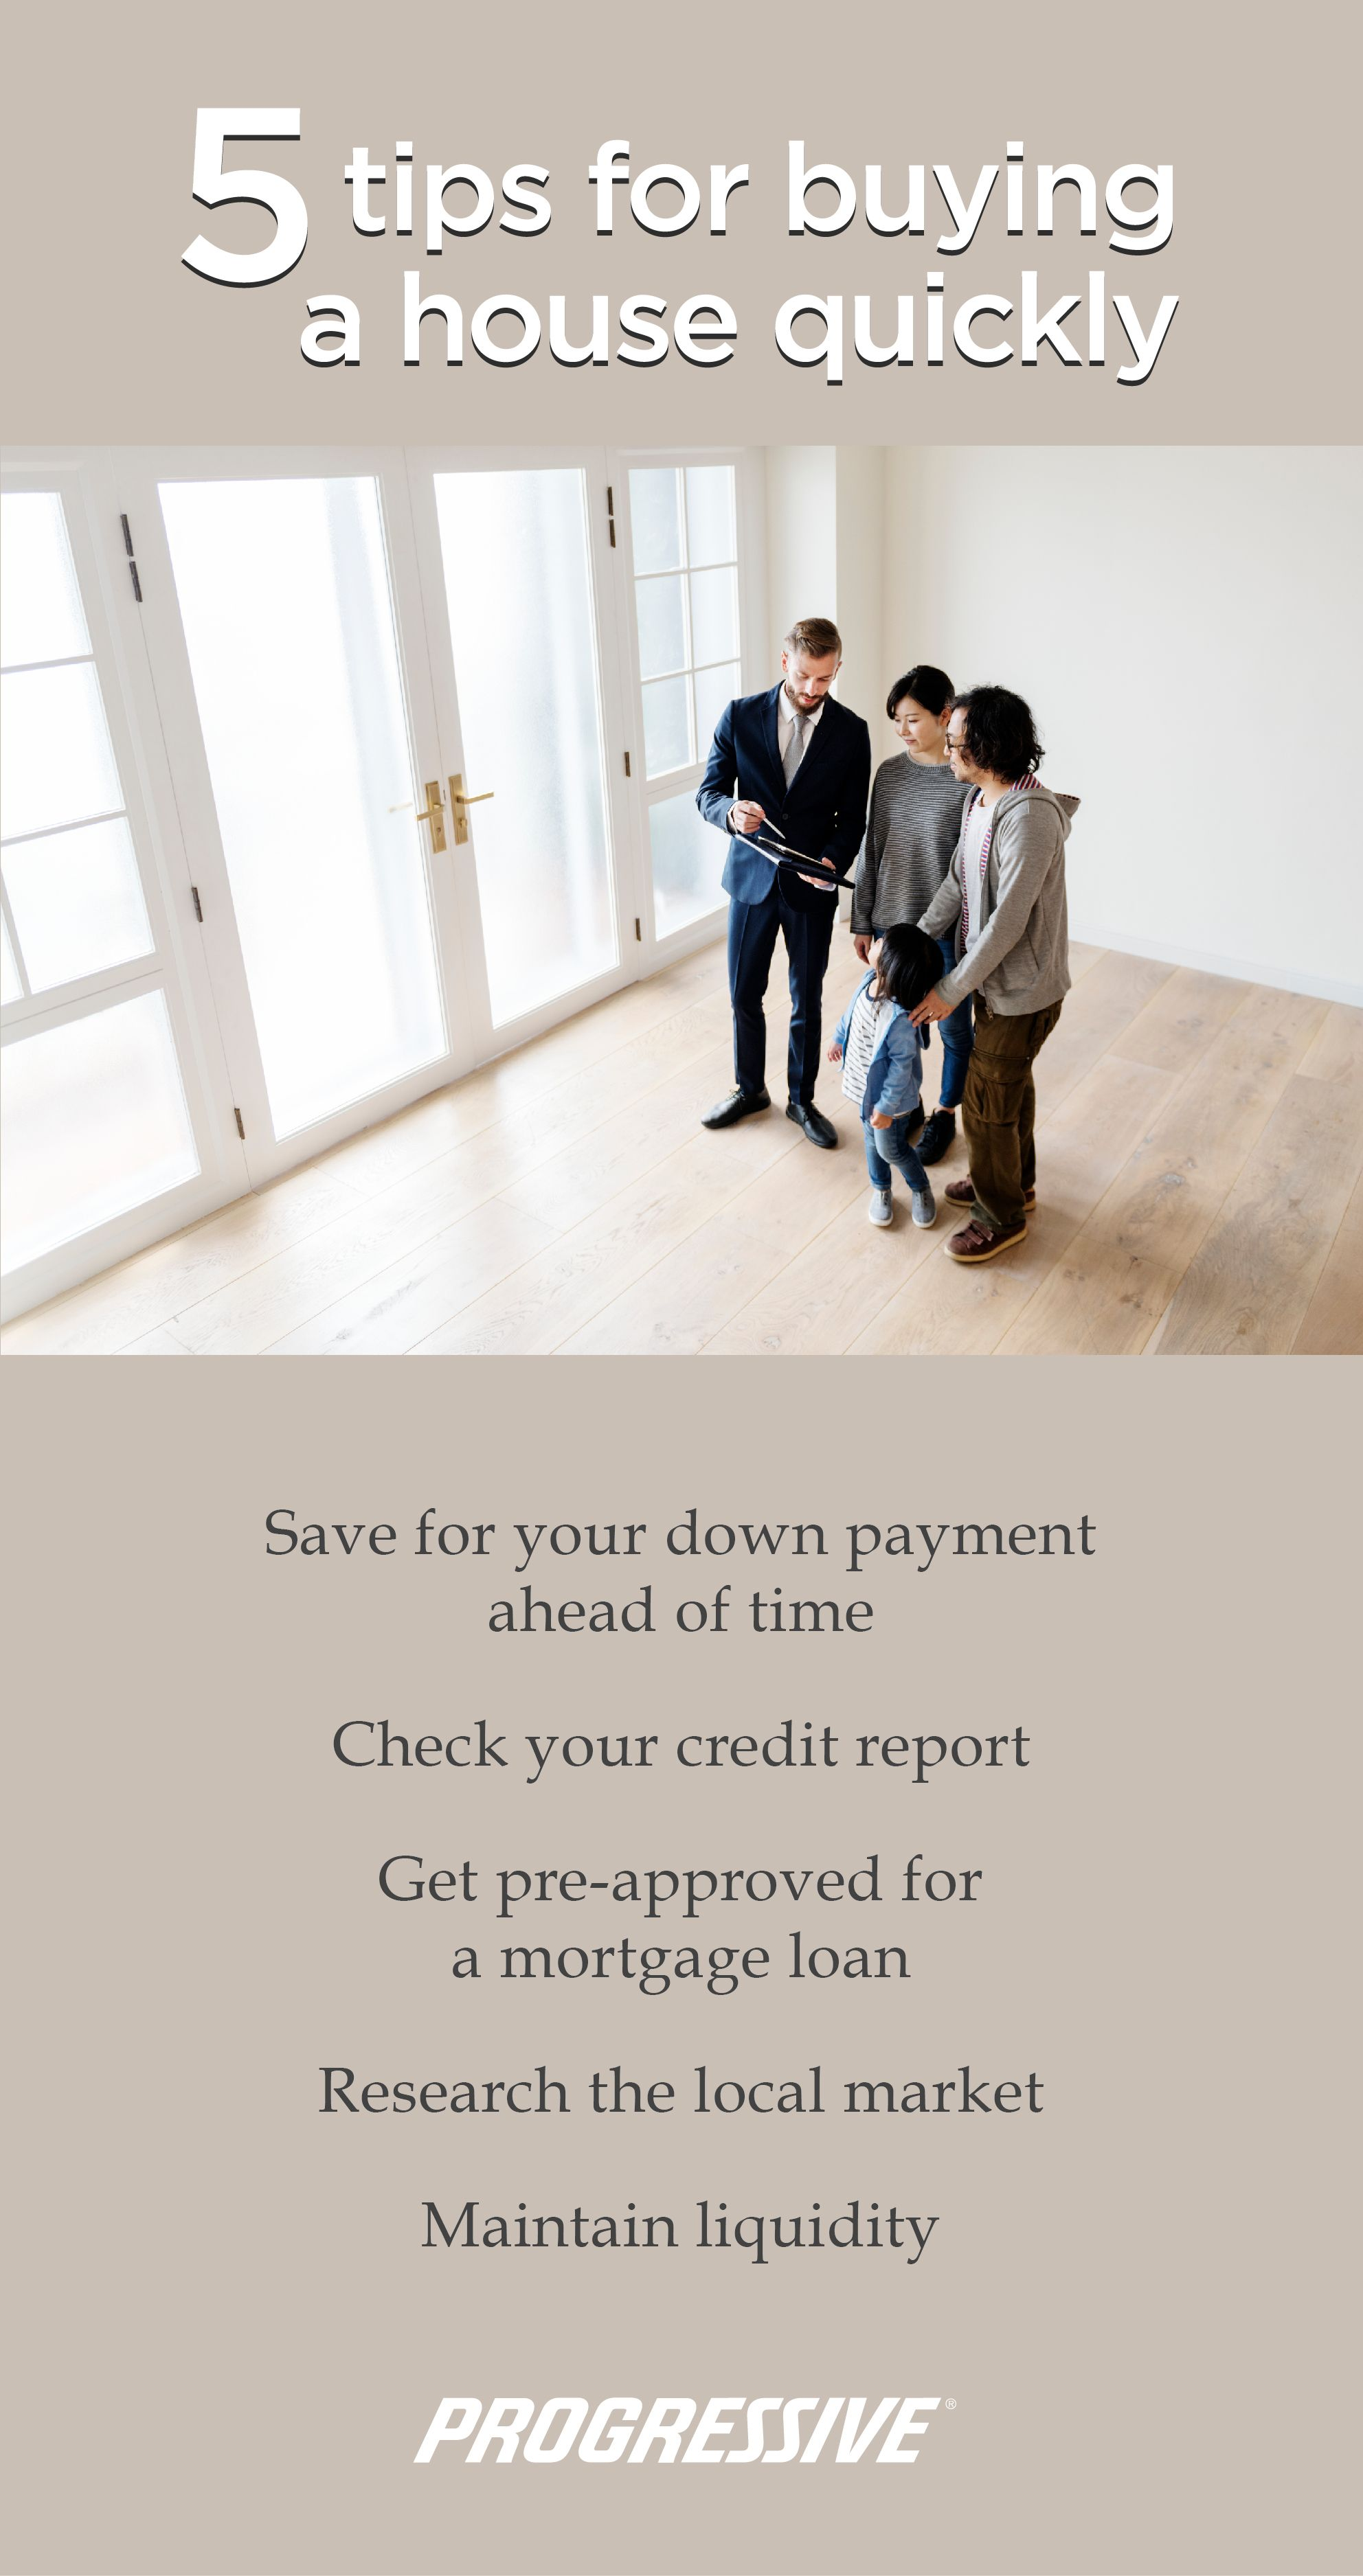 Get peace of mind and protection with homeowners insurance